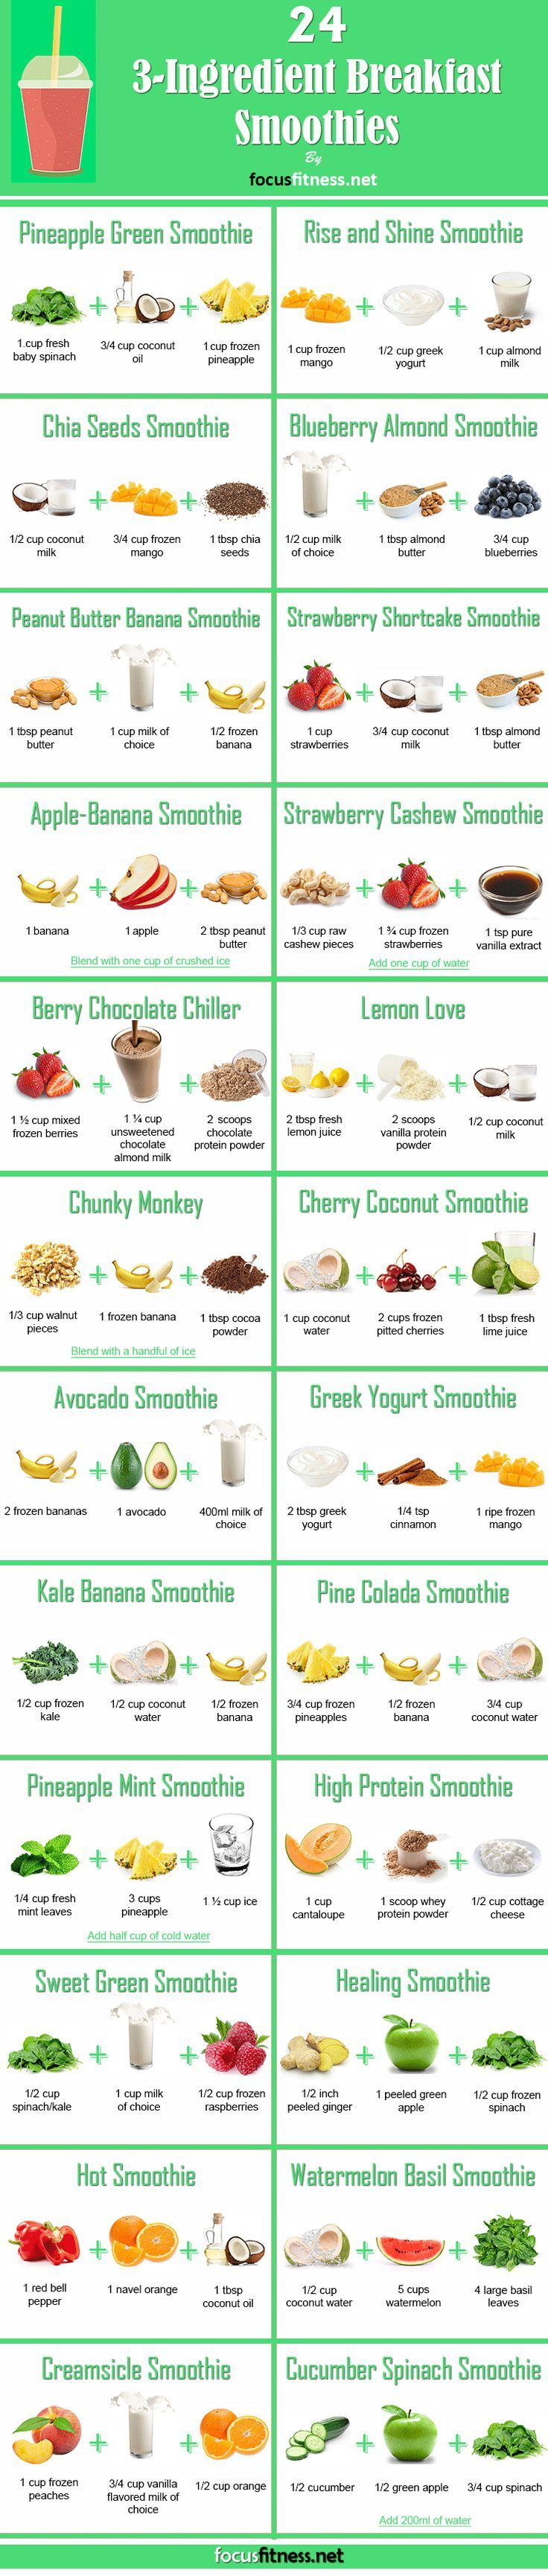 24 3-Ingredient Breakfast Smoothies for Weight Loss  #breakfast #ingredient #smoothies #weight